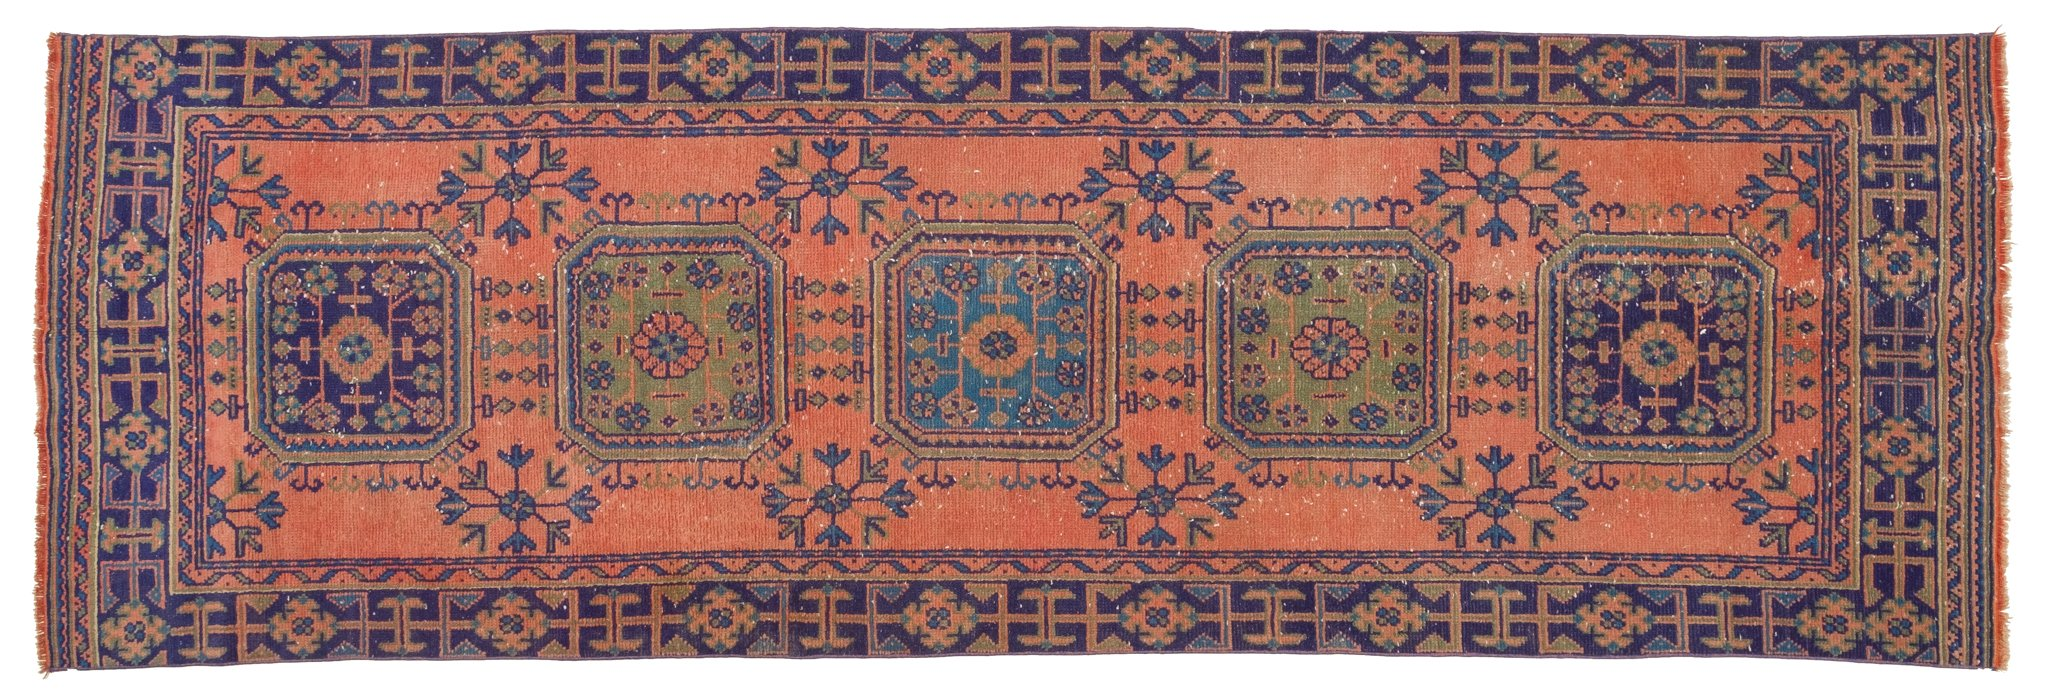 Vintage Turkish Runner Rug Neculae